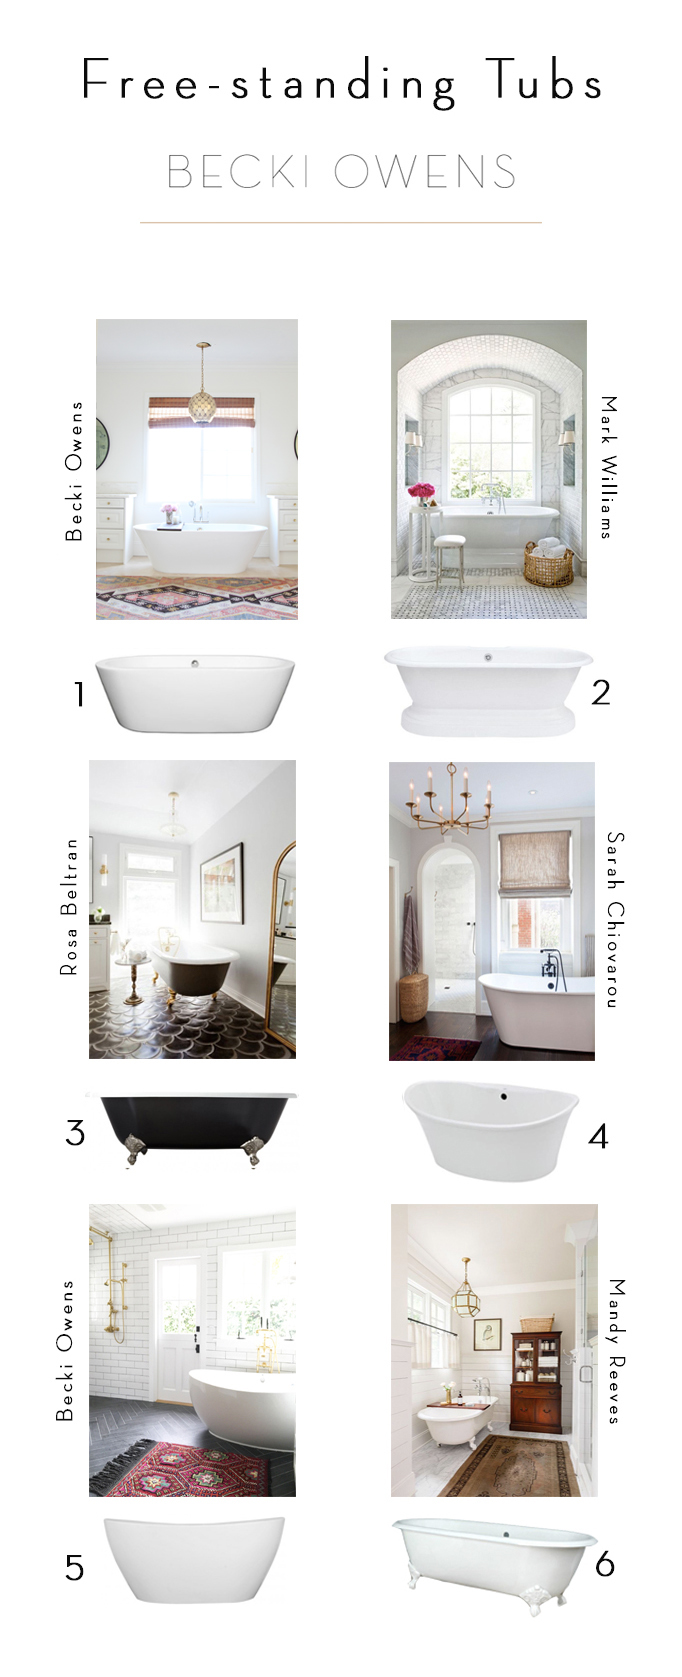 freestanding tub ideas